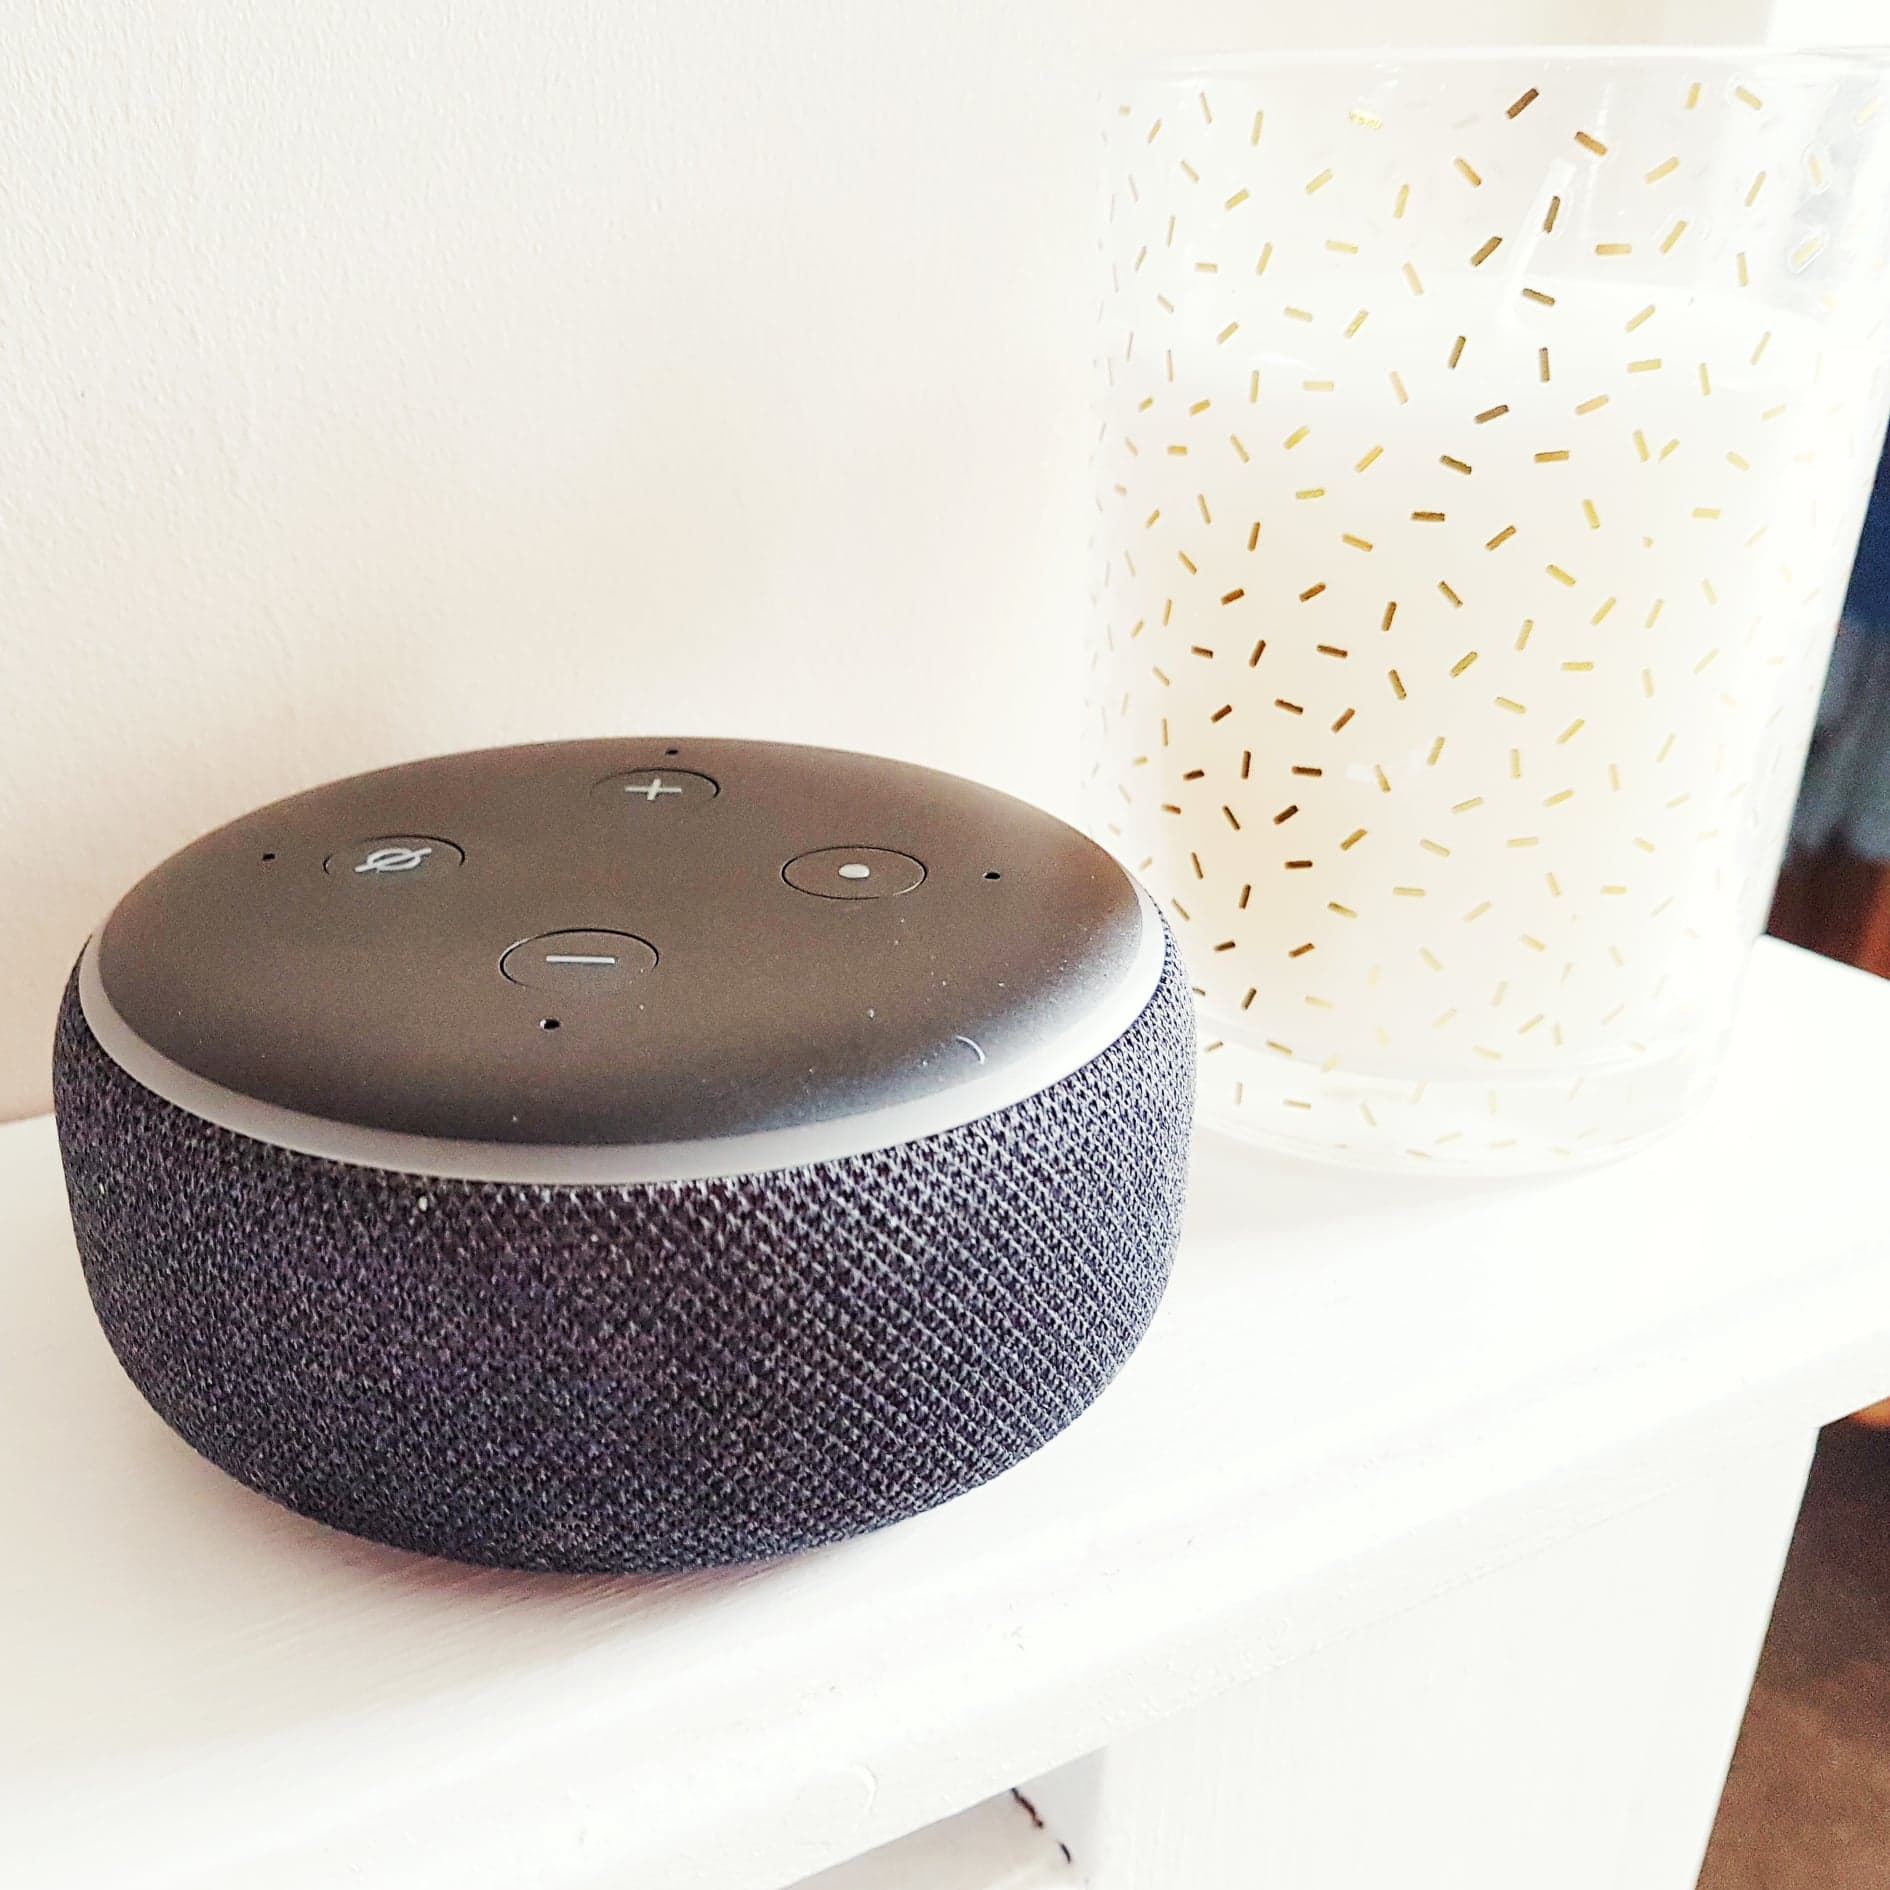 Review of the 3rd Generation Echo Dot